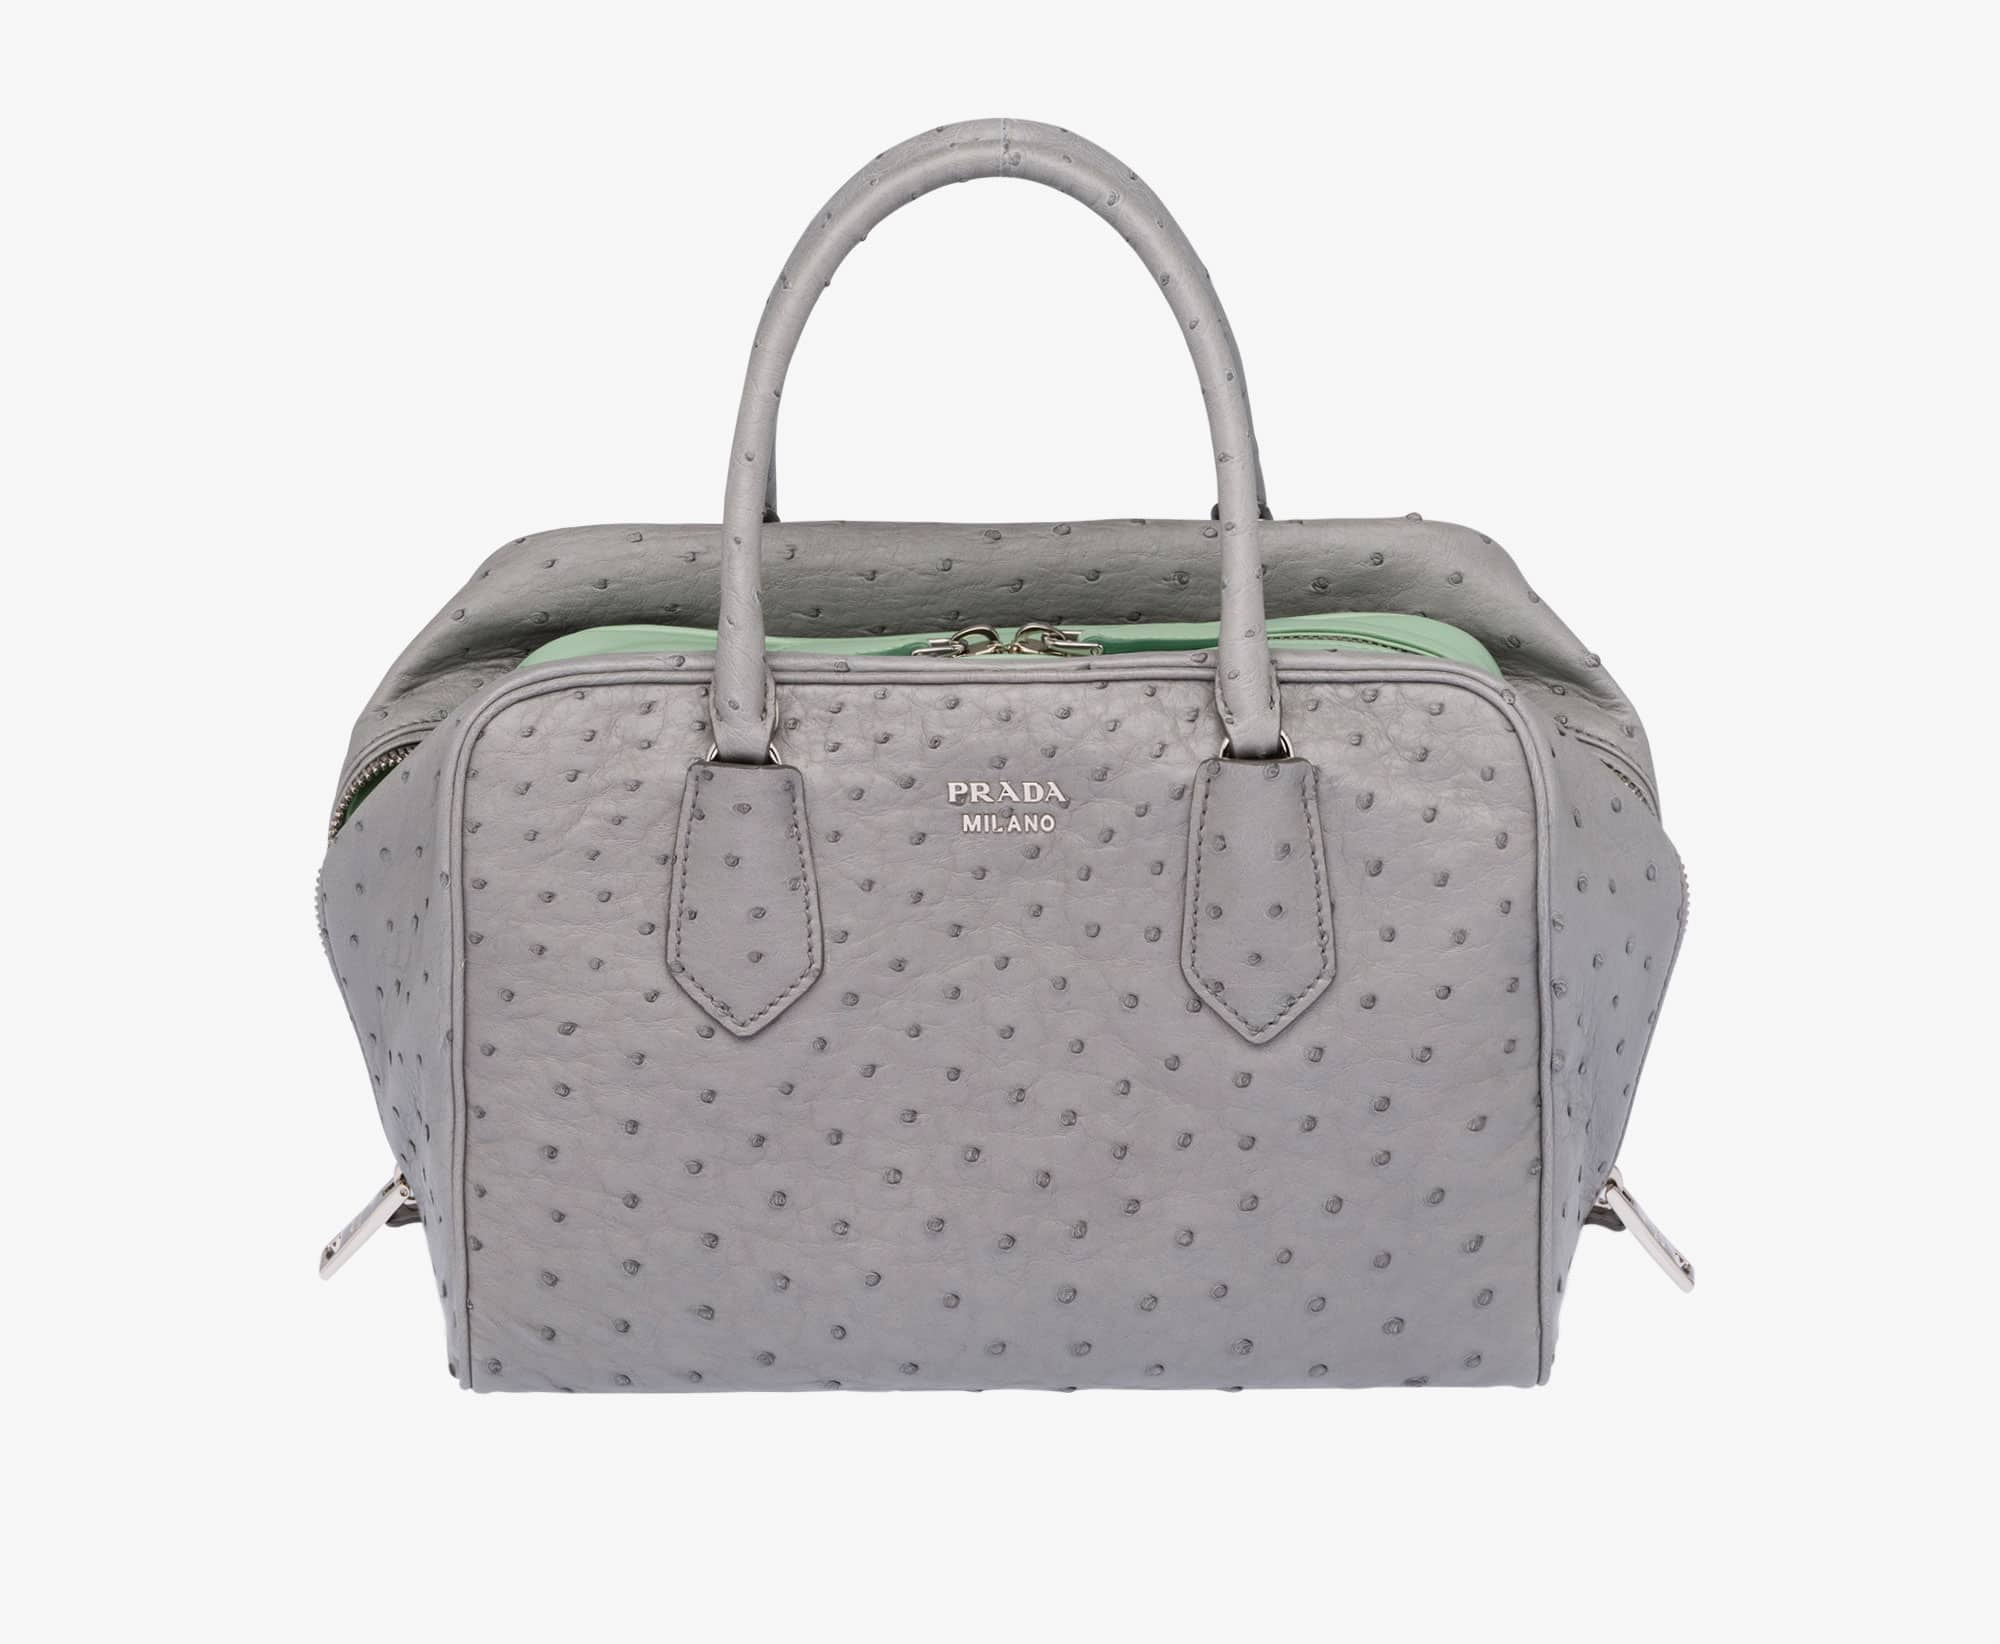 42589306d66c ... buy prada inside tote bag reference guide spotted fashion 9d8e4 27762